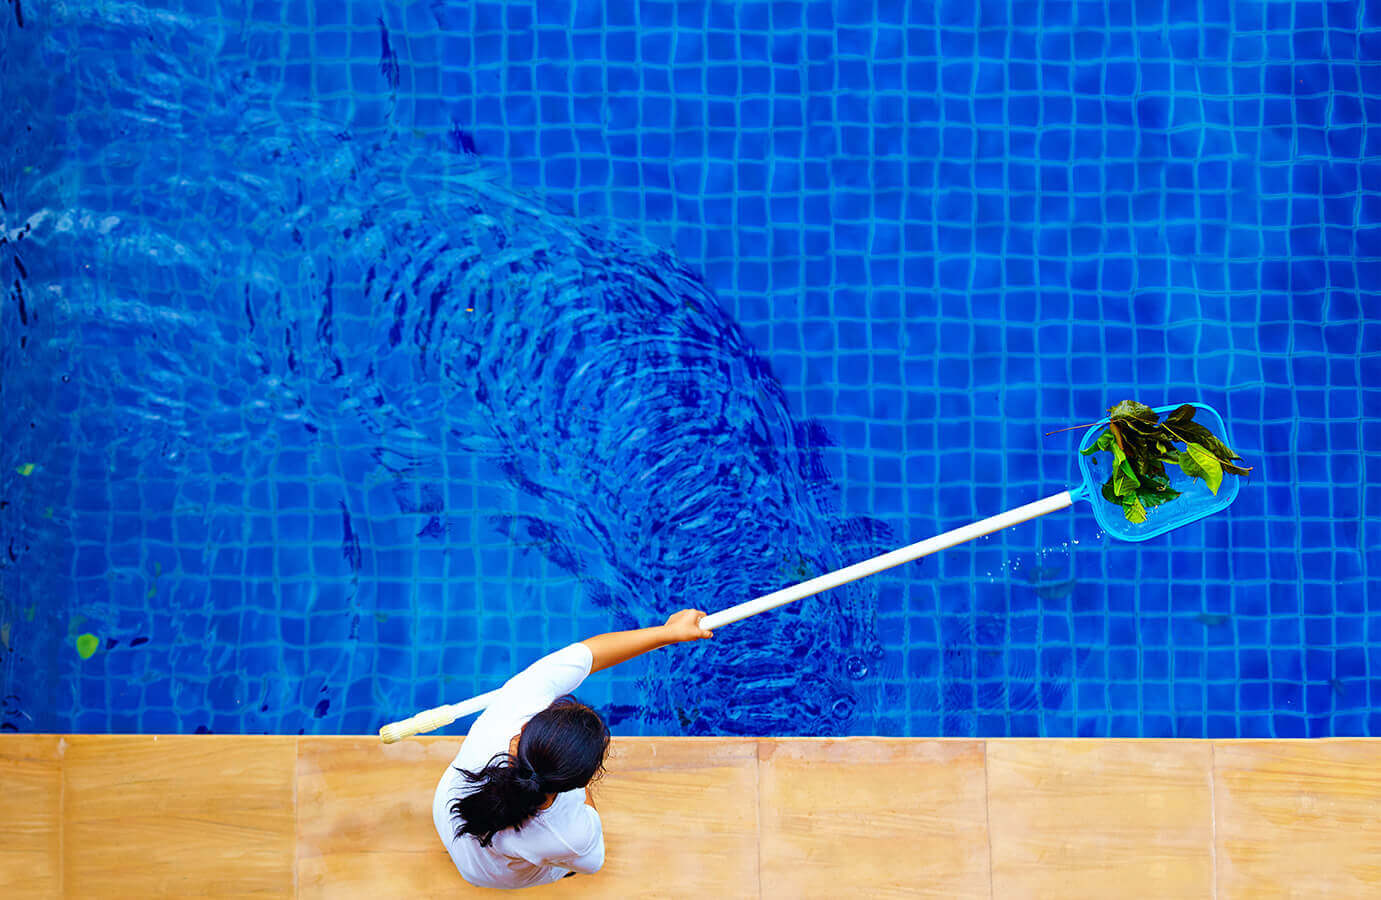 Pool Cleaner Service in Lutz and Land O Lakes FL by GPS Pools